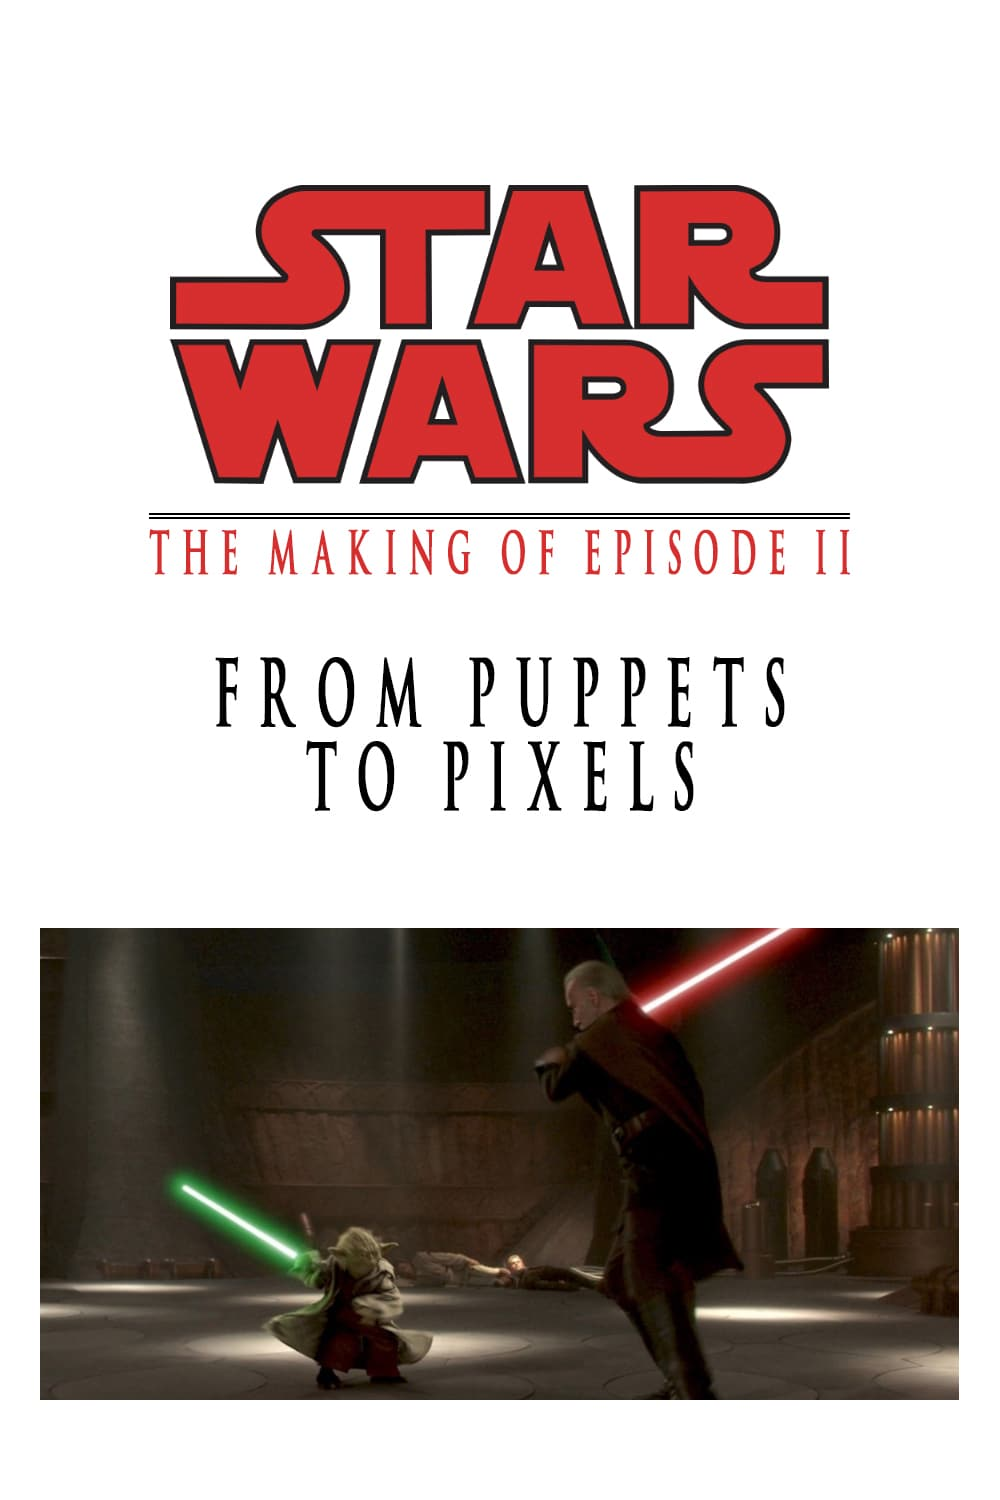 From Puppets To Pixels Digital Characters In Episode Ii